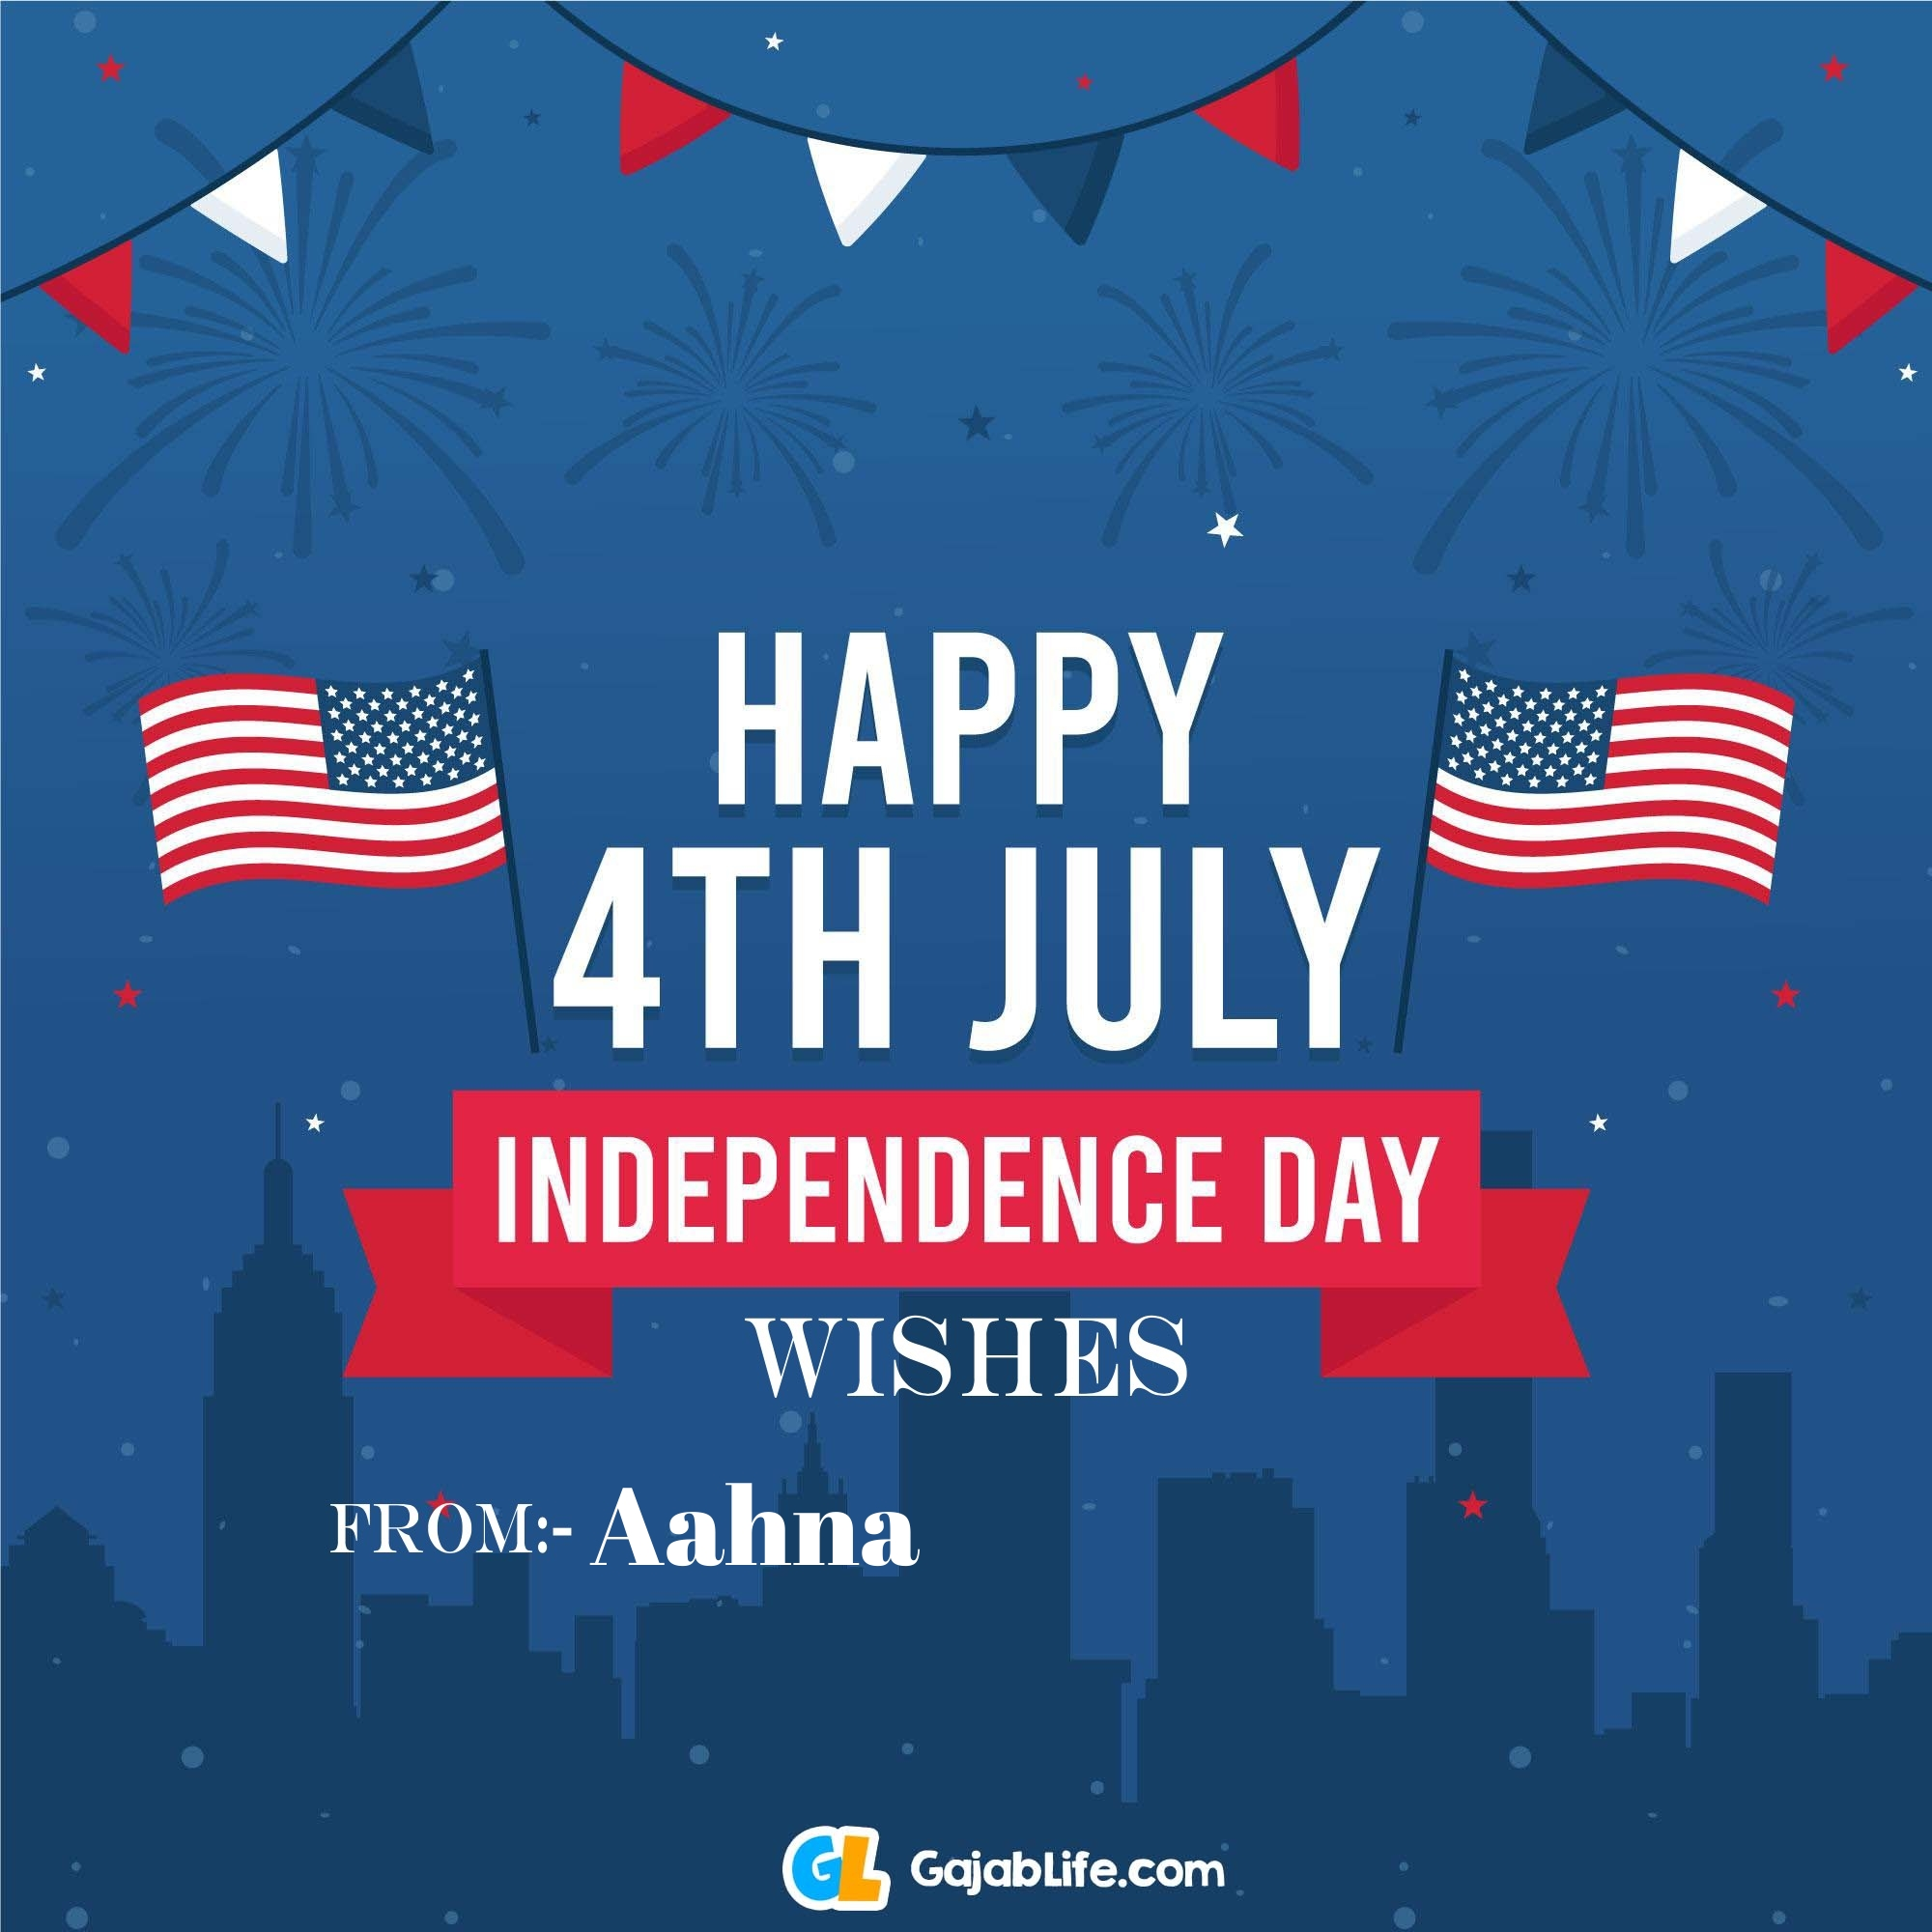 Aahna happy independence day united states of america images